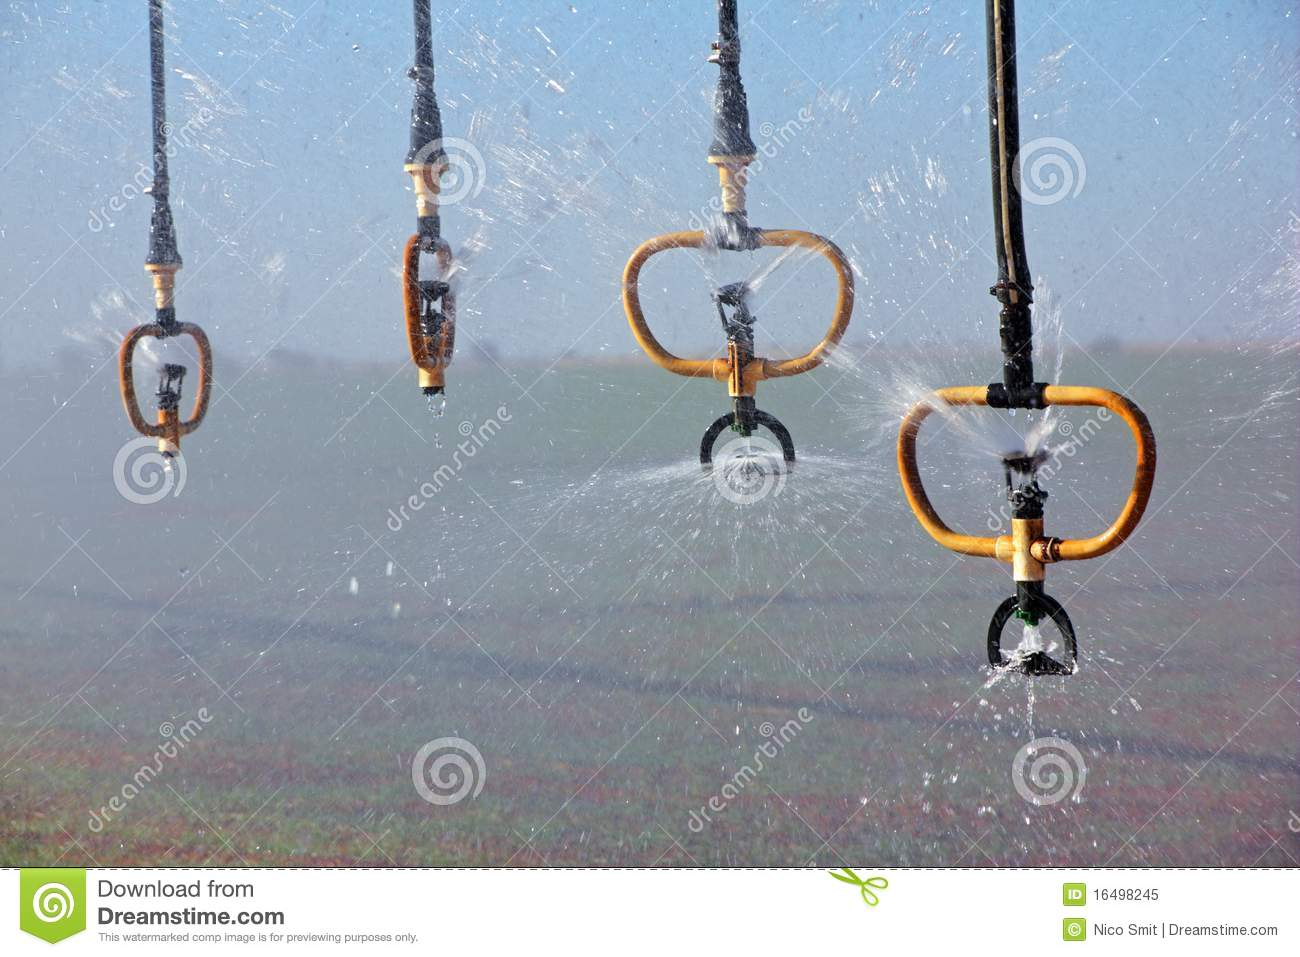 Water Sprinklers Royalty Free Stock Photo   Image  16498245